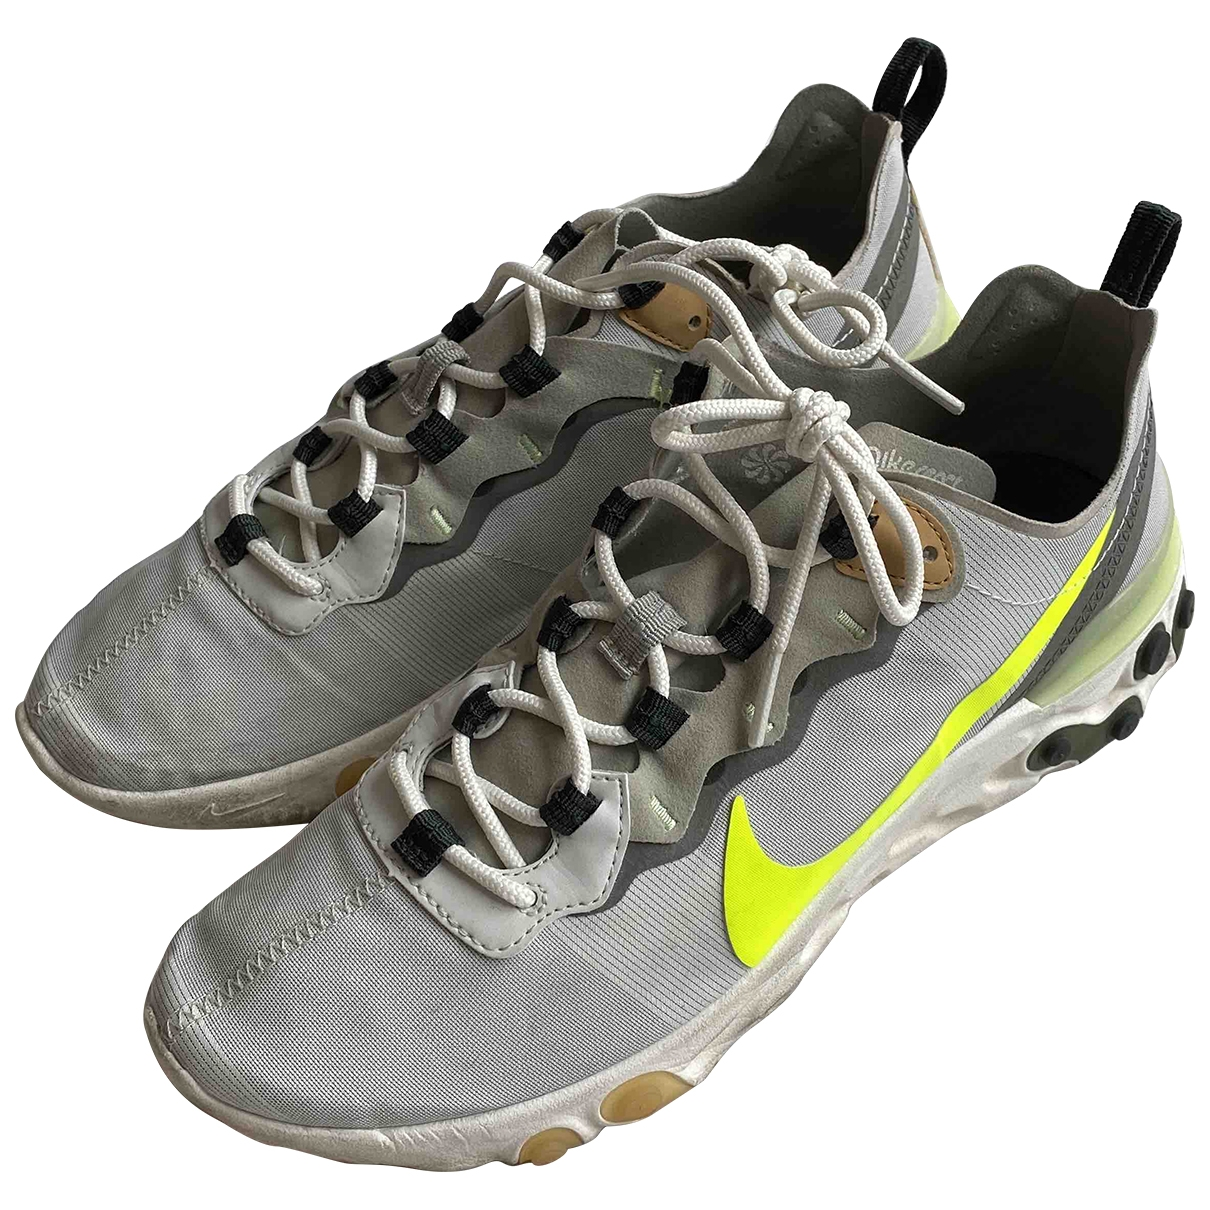 Nike React element 55 Cloth Trainers for Men 8.5 US